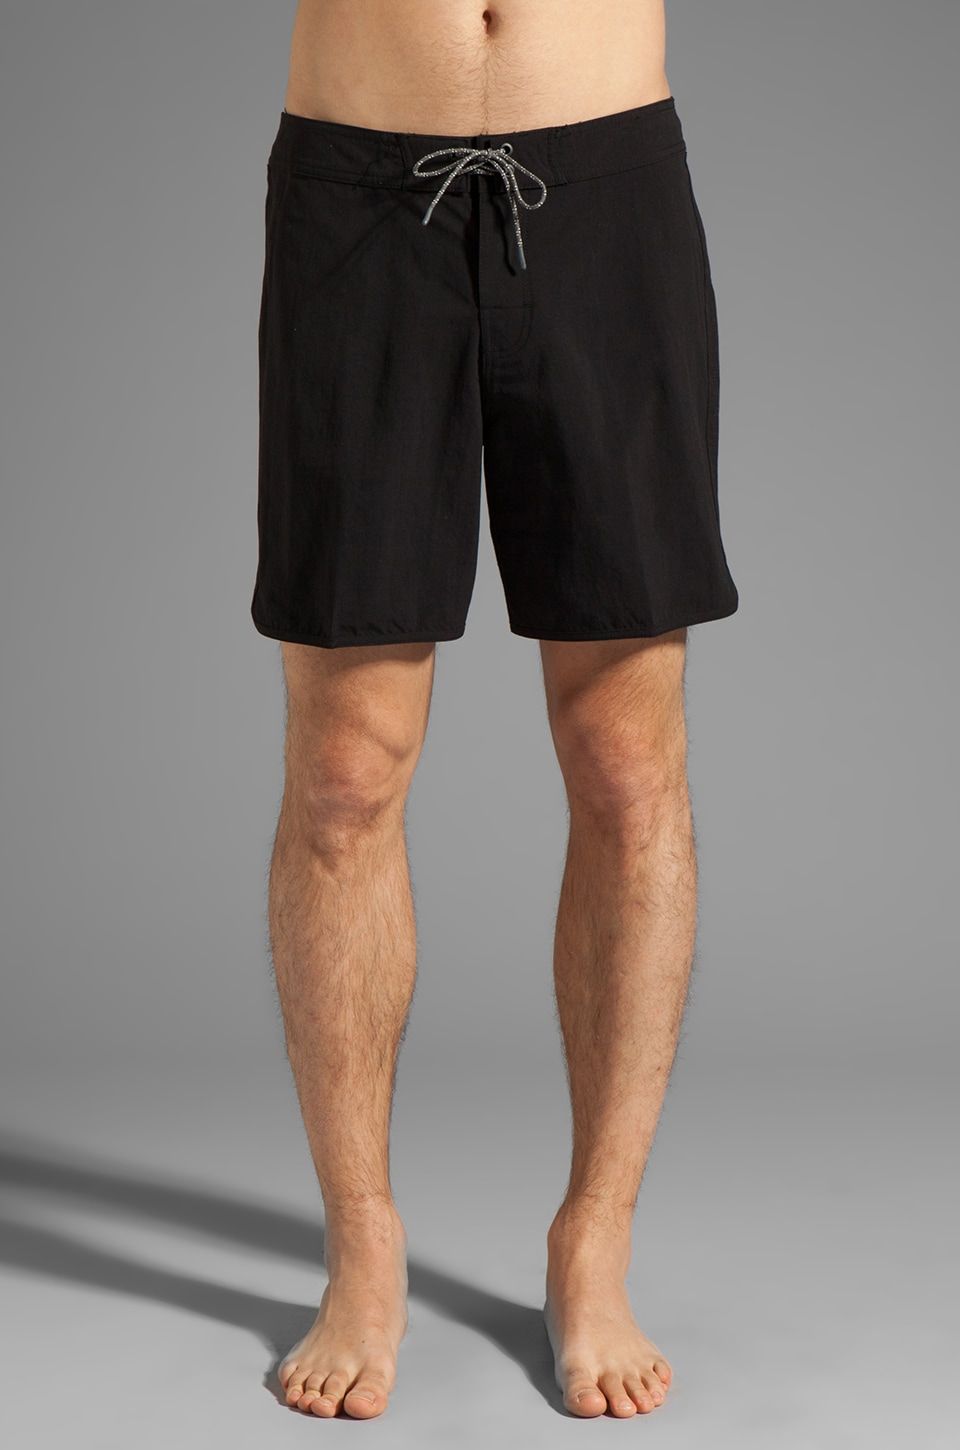 V.S.T.R Outbound Boardshort in Black Ink/Charcoal